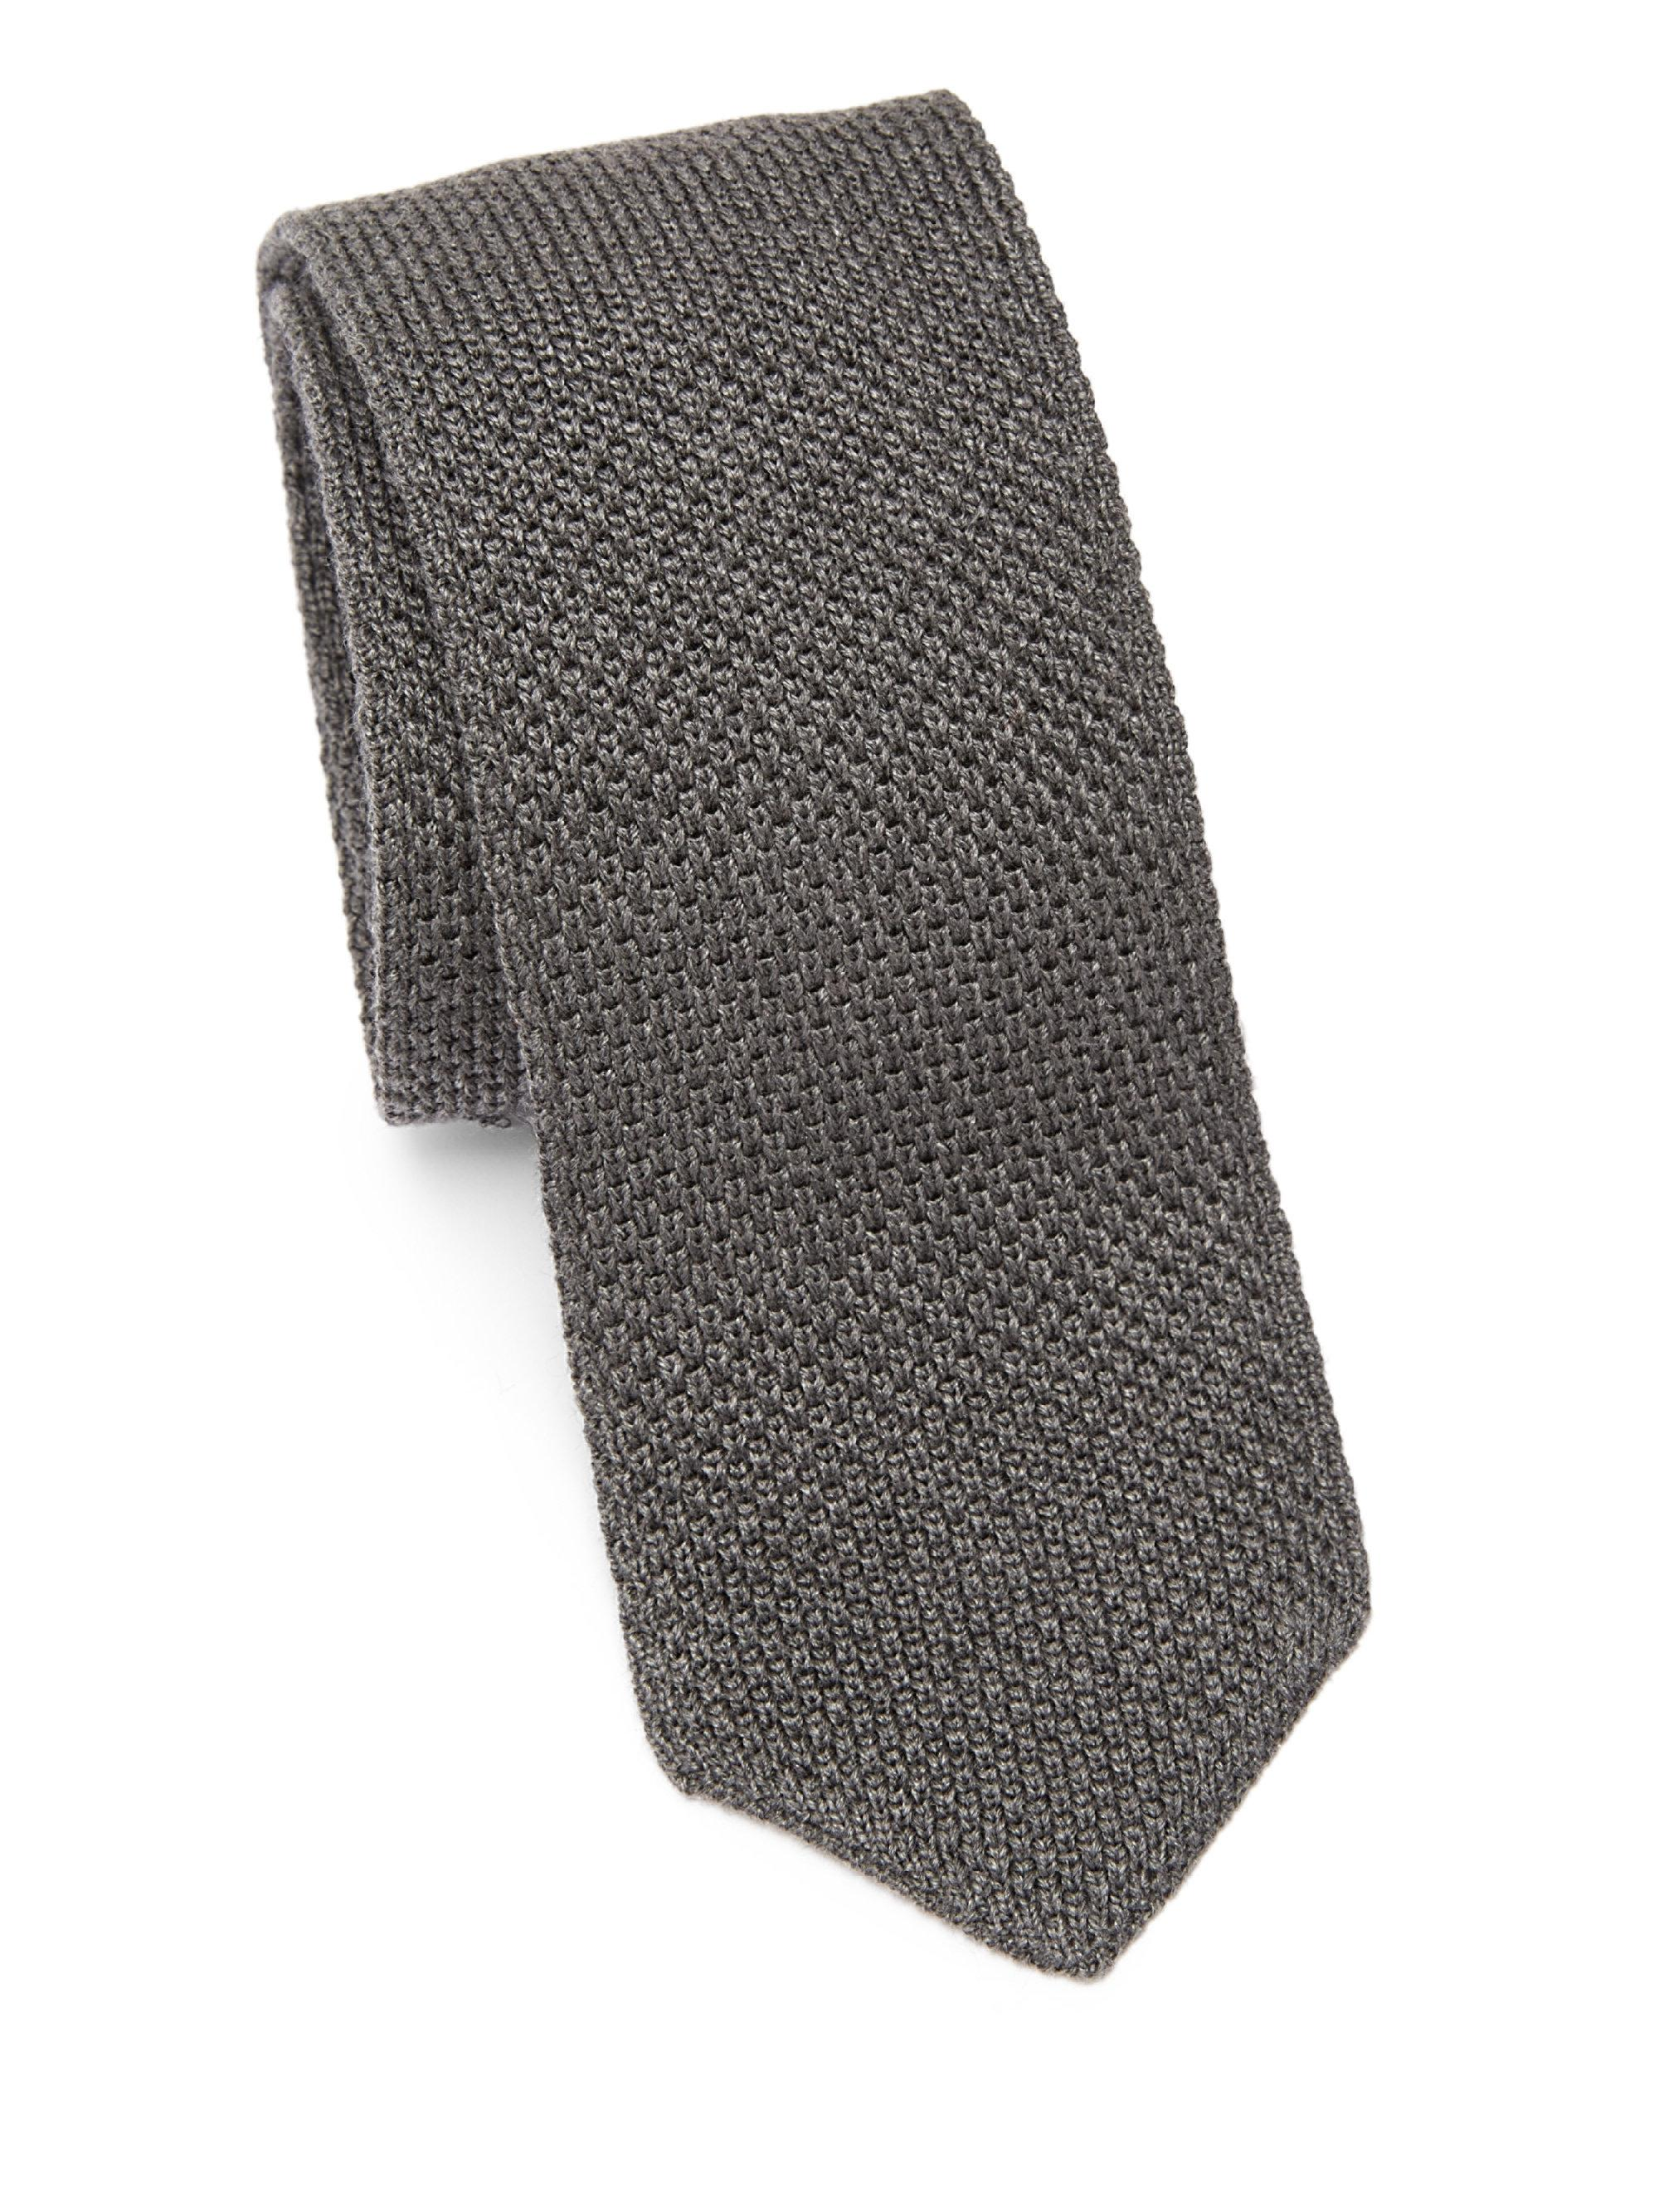 Tie grey patterned Brunello Cucinelli Limited upb1QGpo